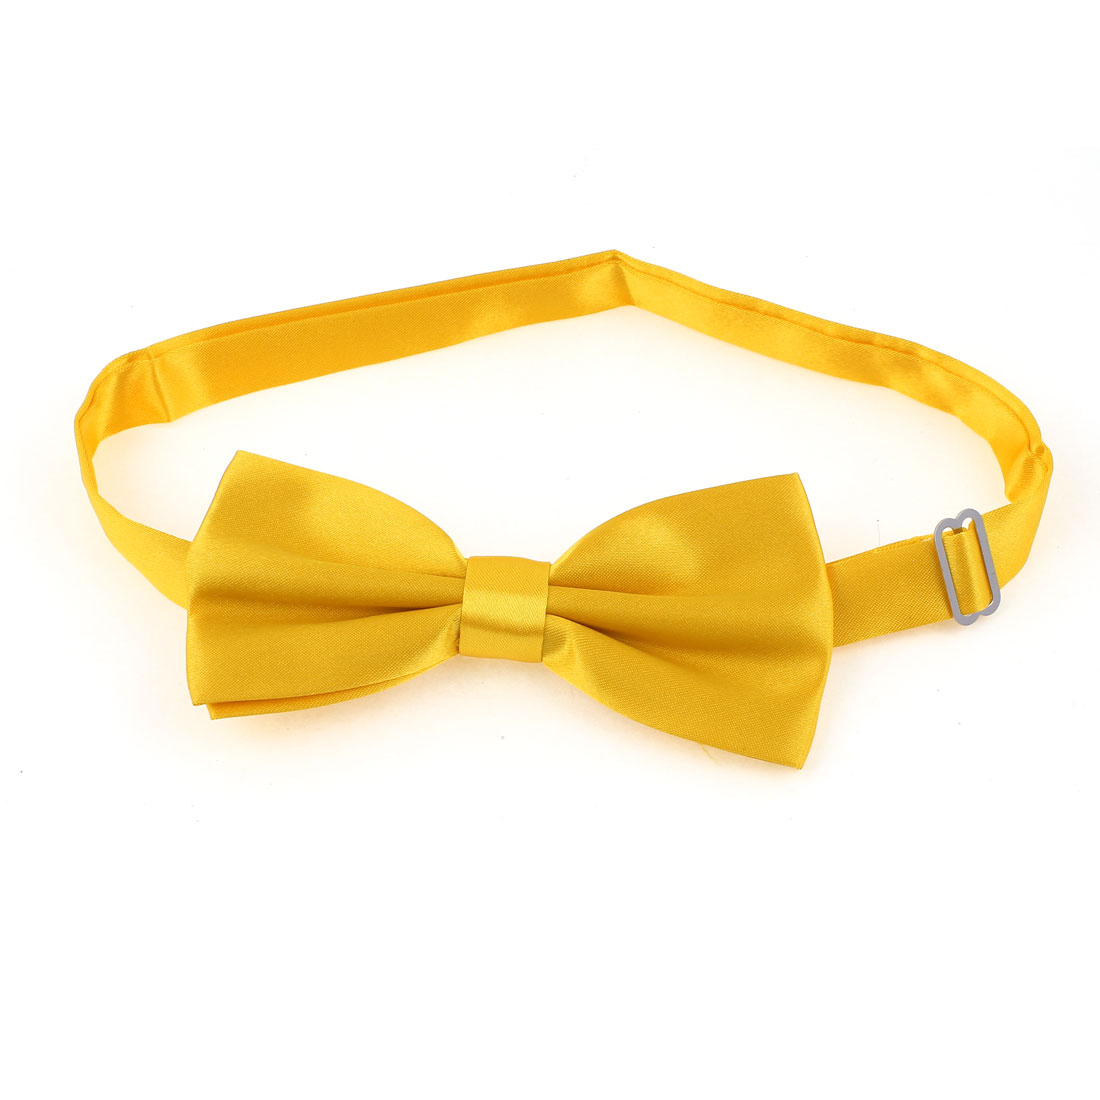 Metal Buckle Adjustable Strap Pet Dog Yorkie Puppy Collar Bowtie Necktie Yellow